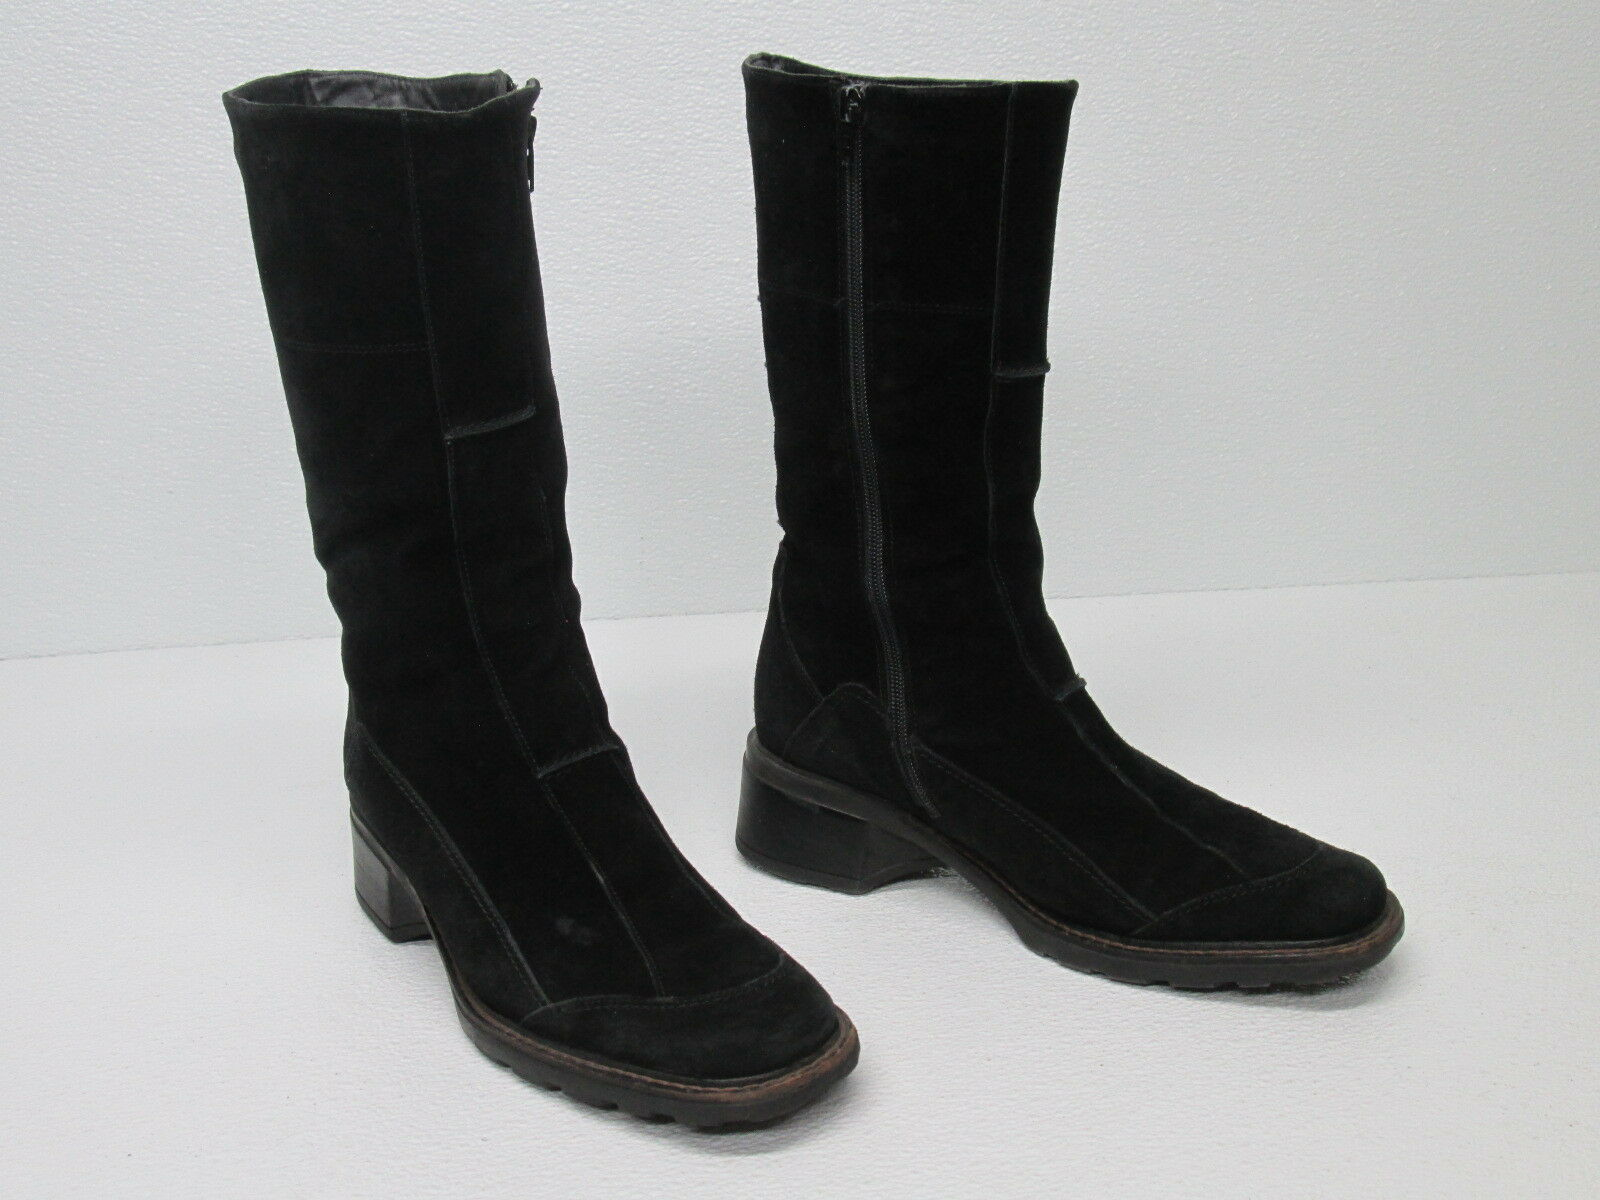 AQUATALIA  BLACK SUEDE ZIP MID CALF BOOTS LACE UP ACCENT Size WOMEN'S 9.5 M